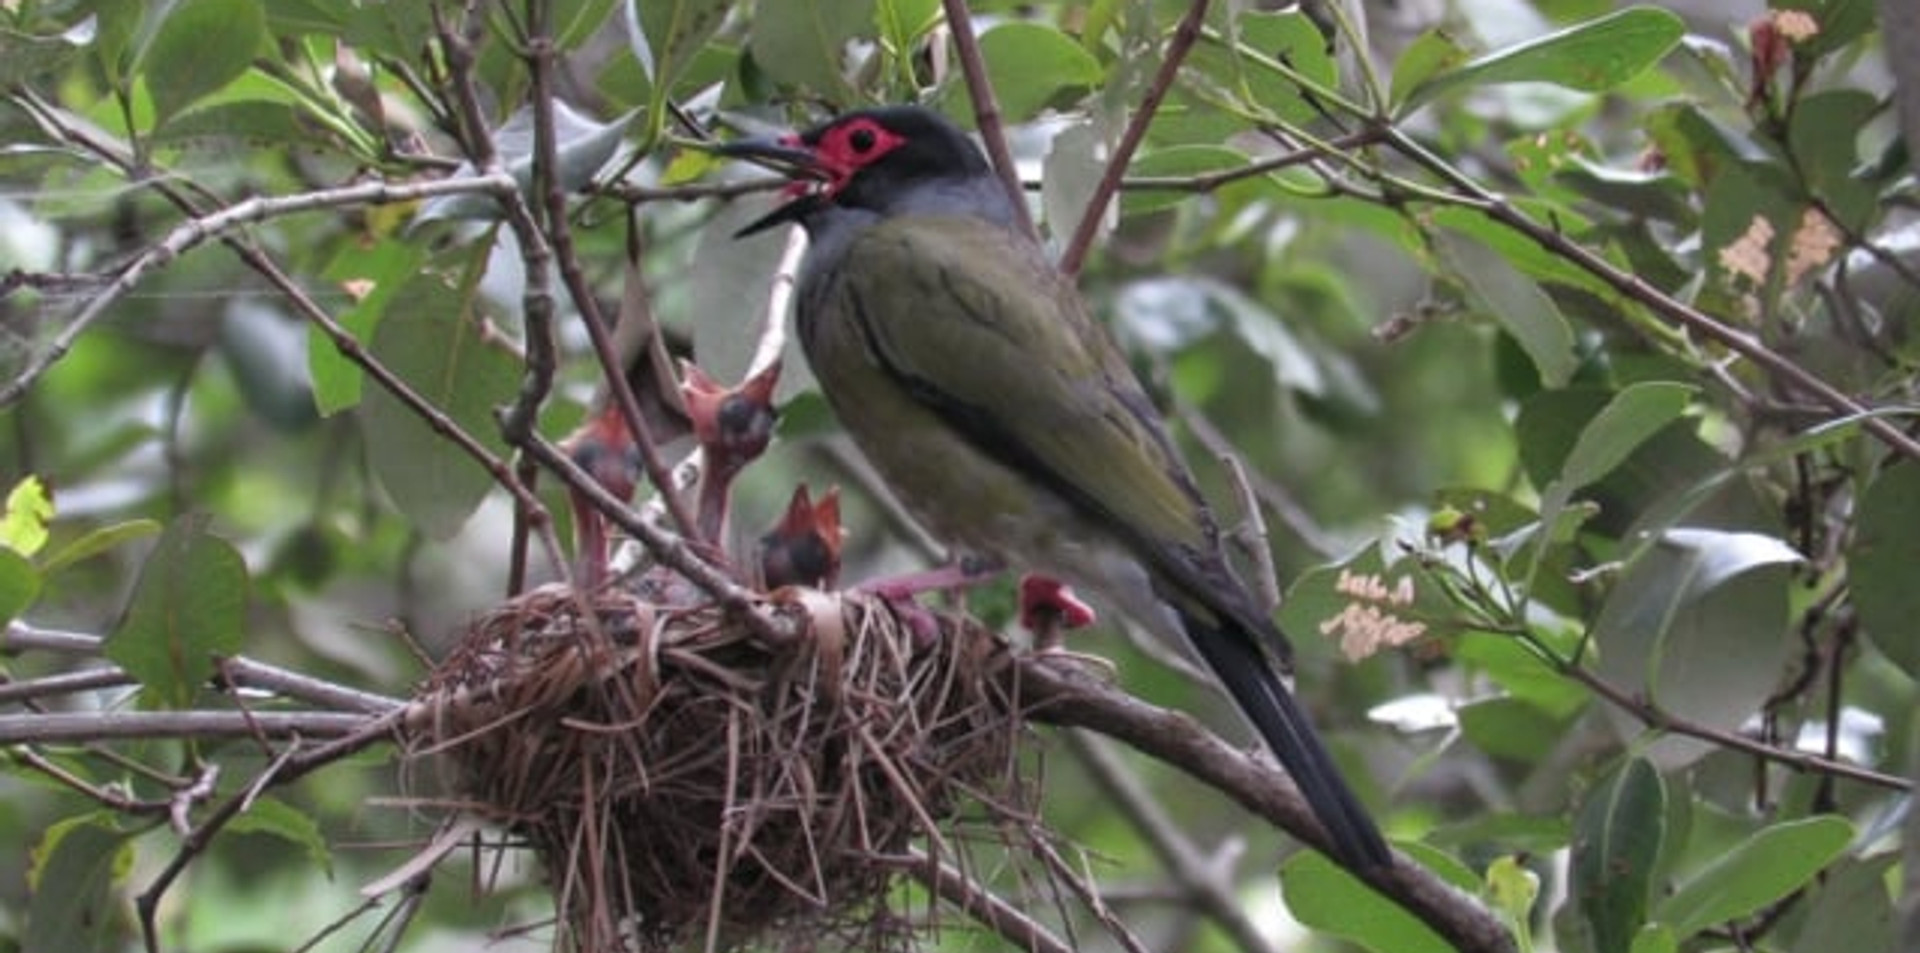 Male Australasian Figbird with chicks